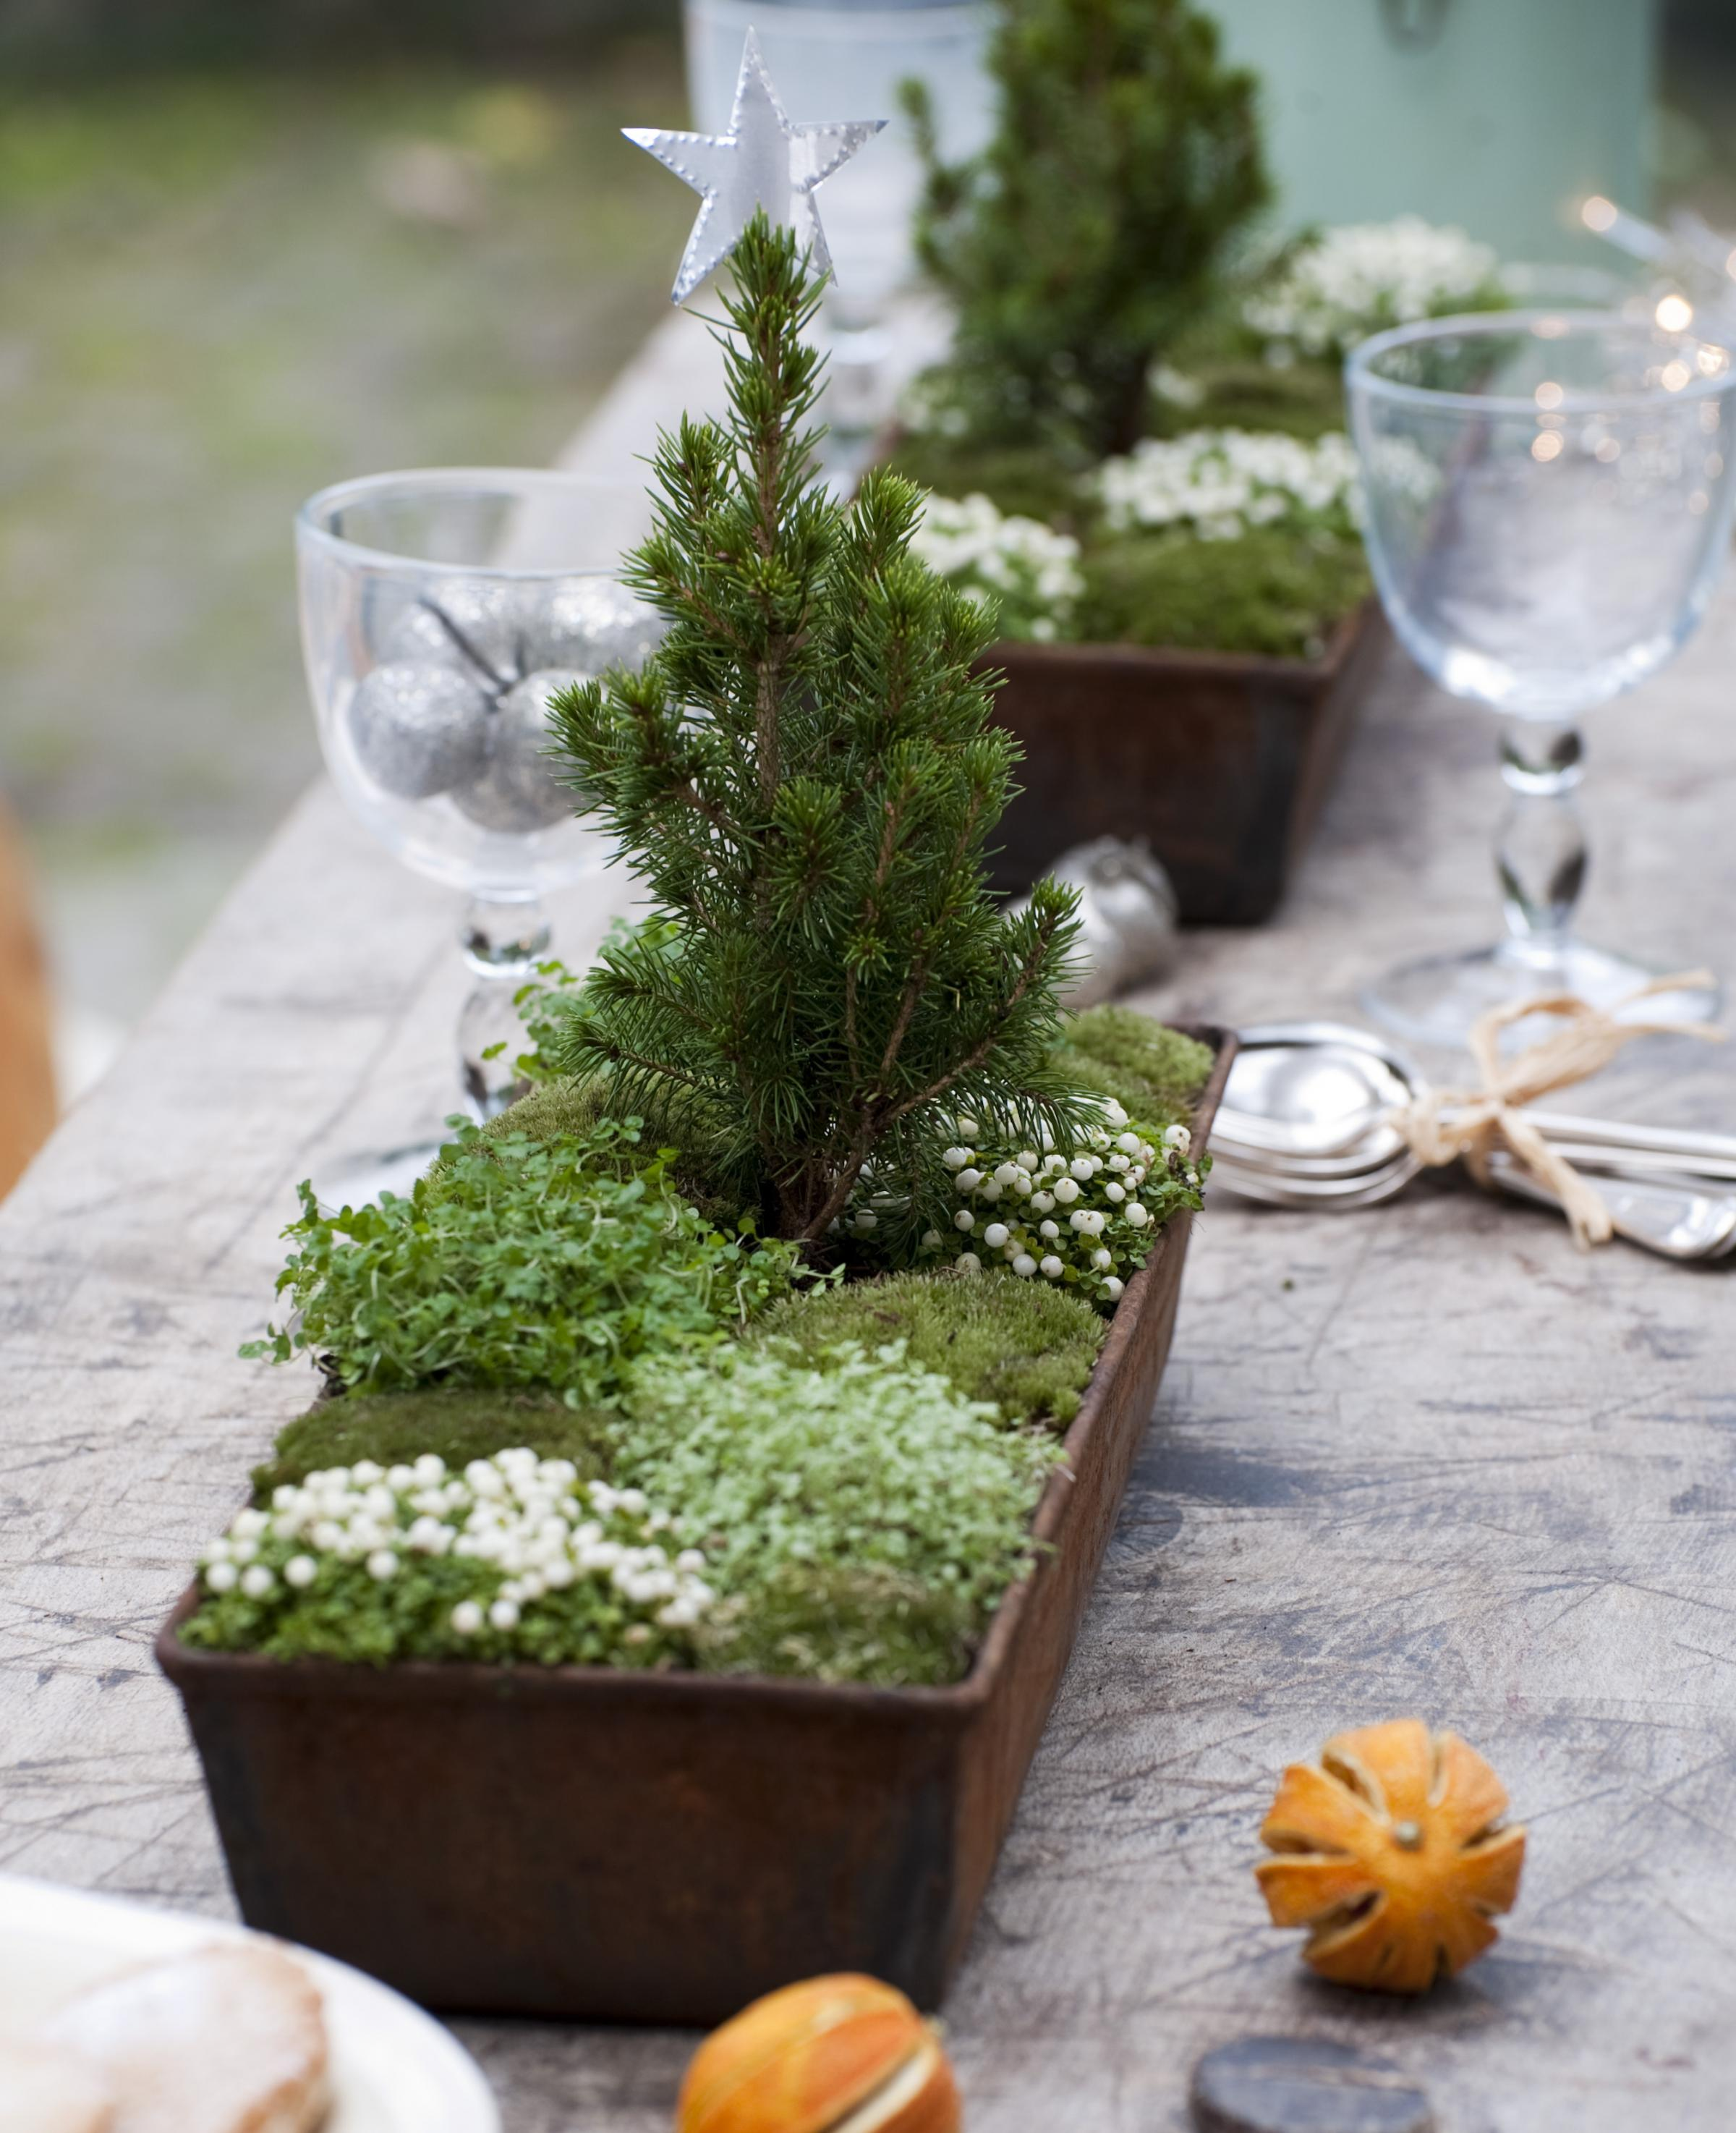 Festive displays the natural way